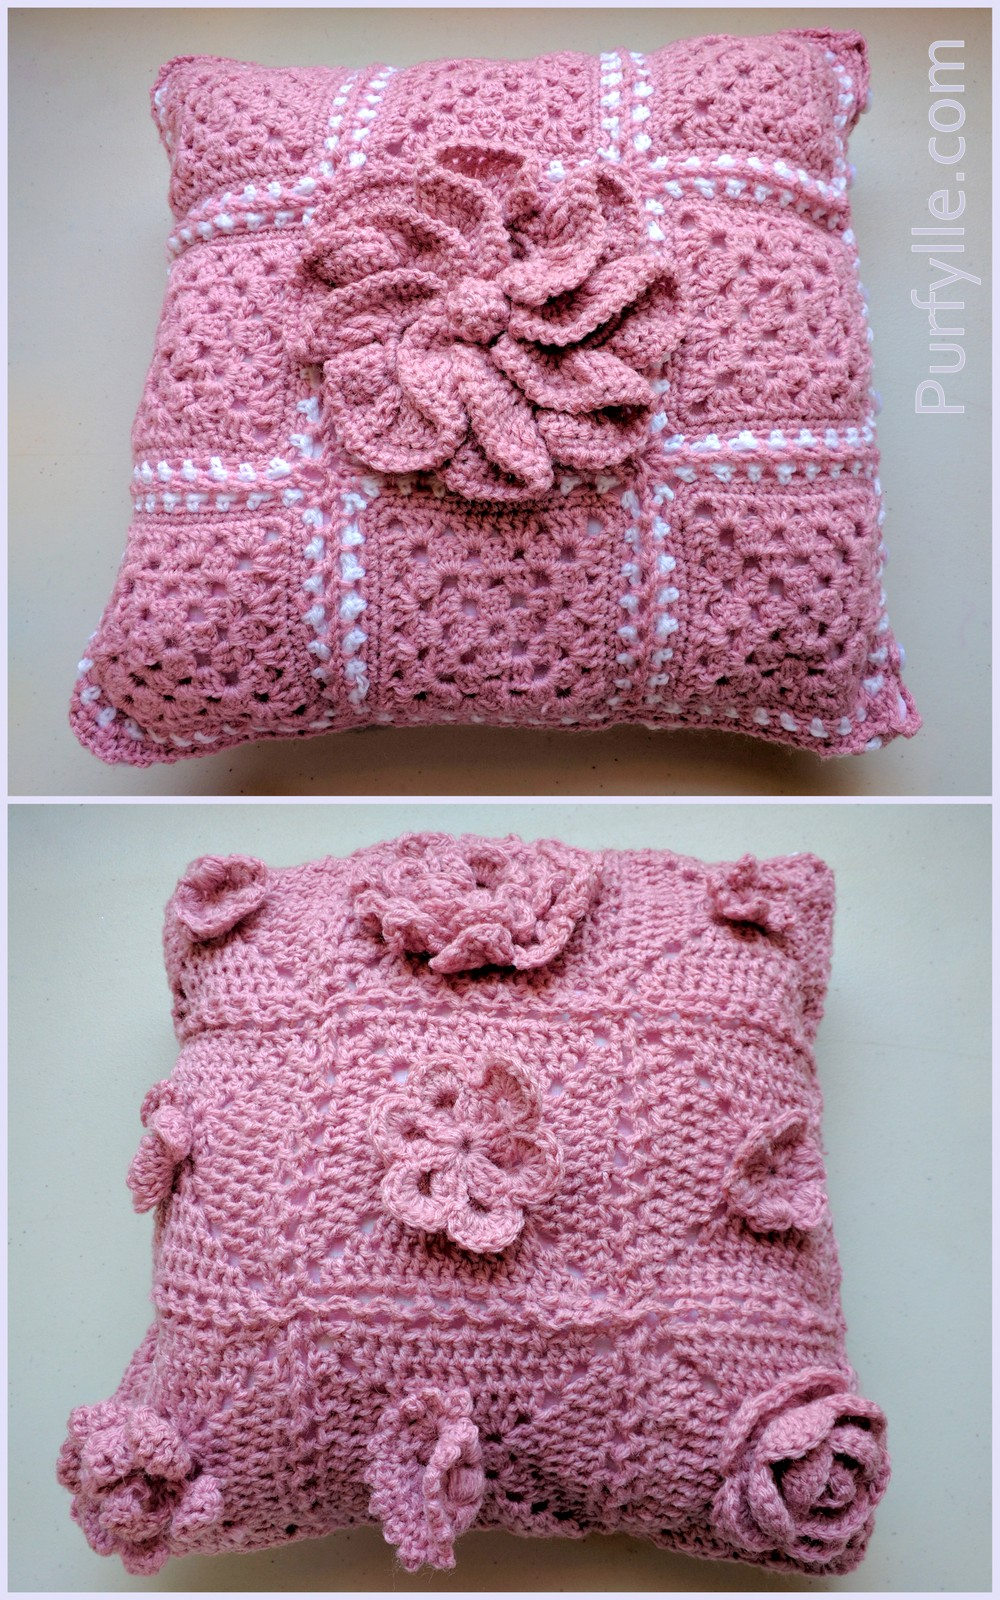 Give your crochet granny square cushions a 3D effect with crochet motifs